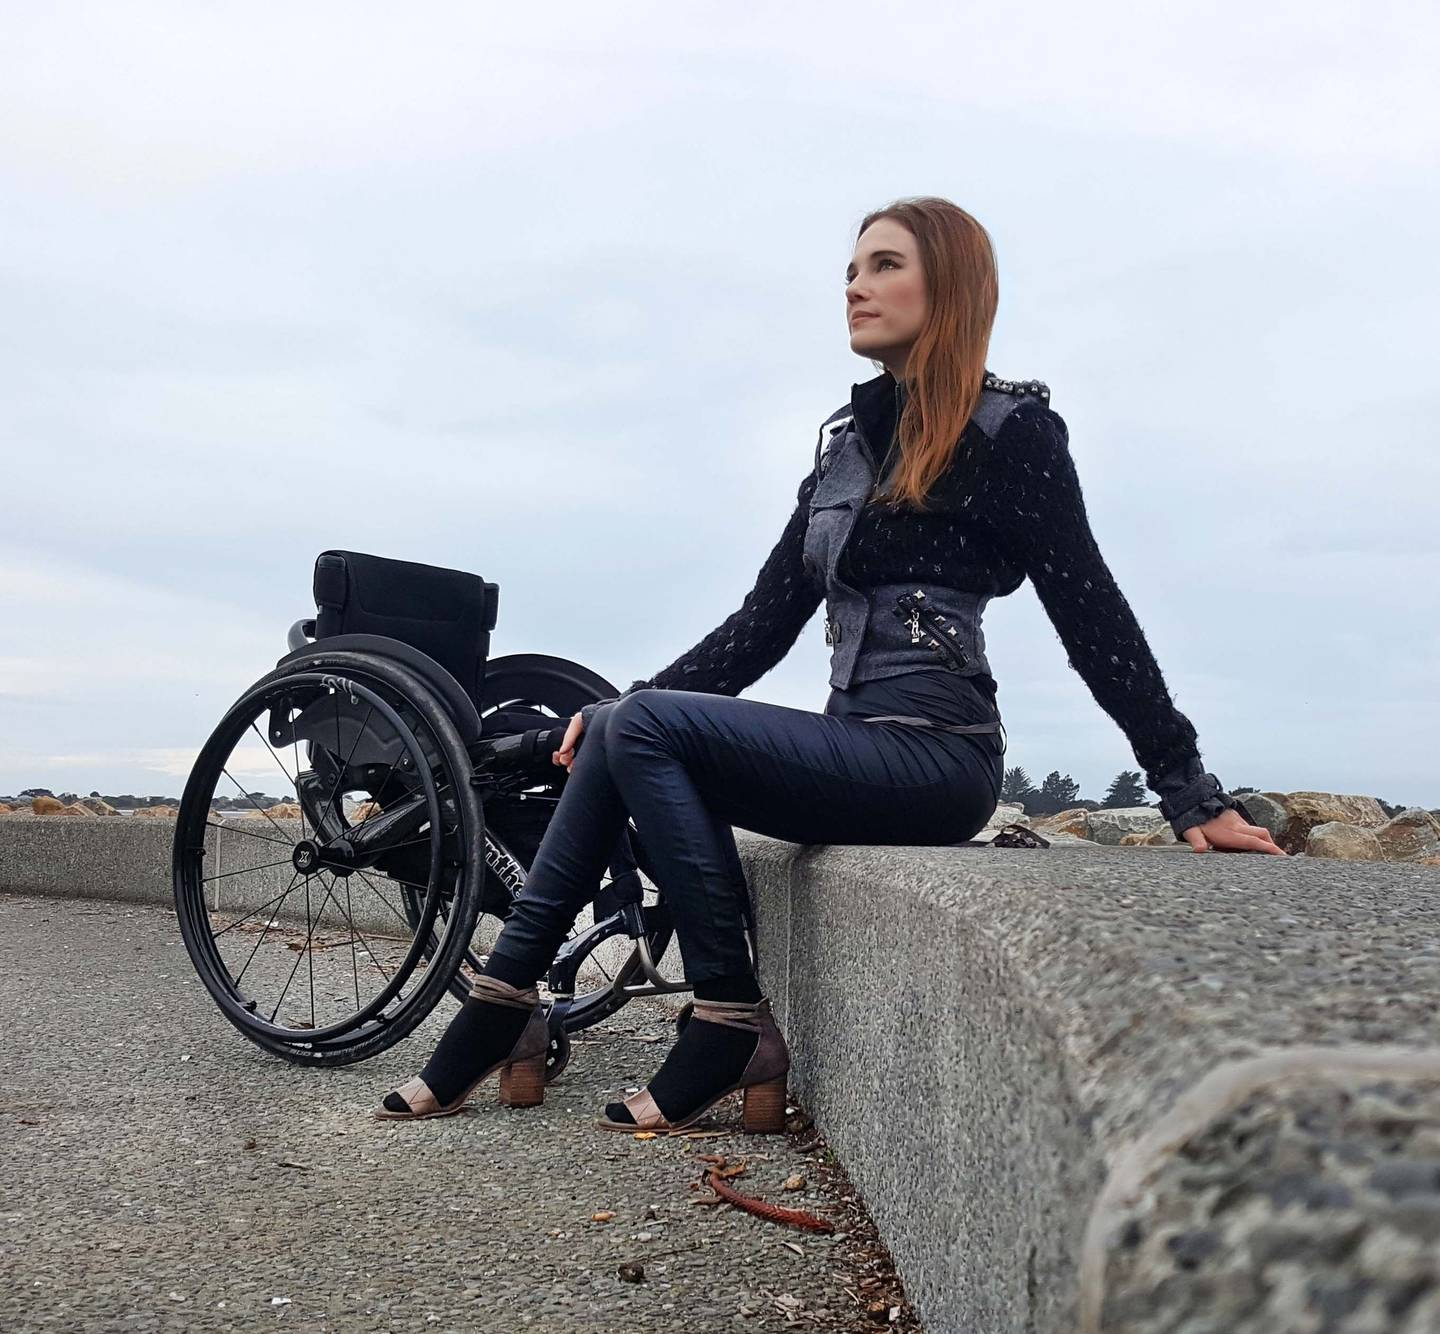 nz-herald-tetraplegic-model-claire-freeman-speaks-out-against-euthanasia-after-once-planning-to-end-her-life.jpg